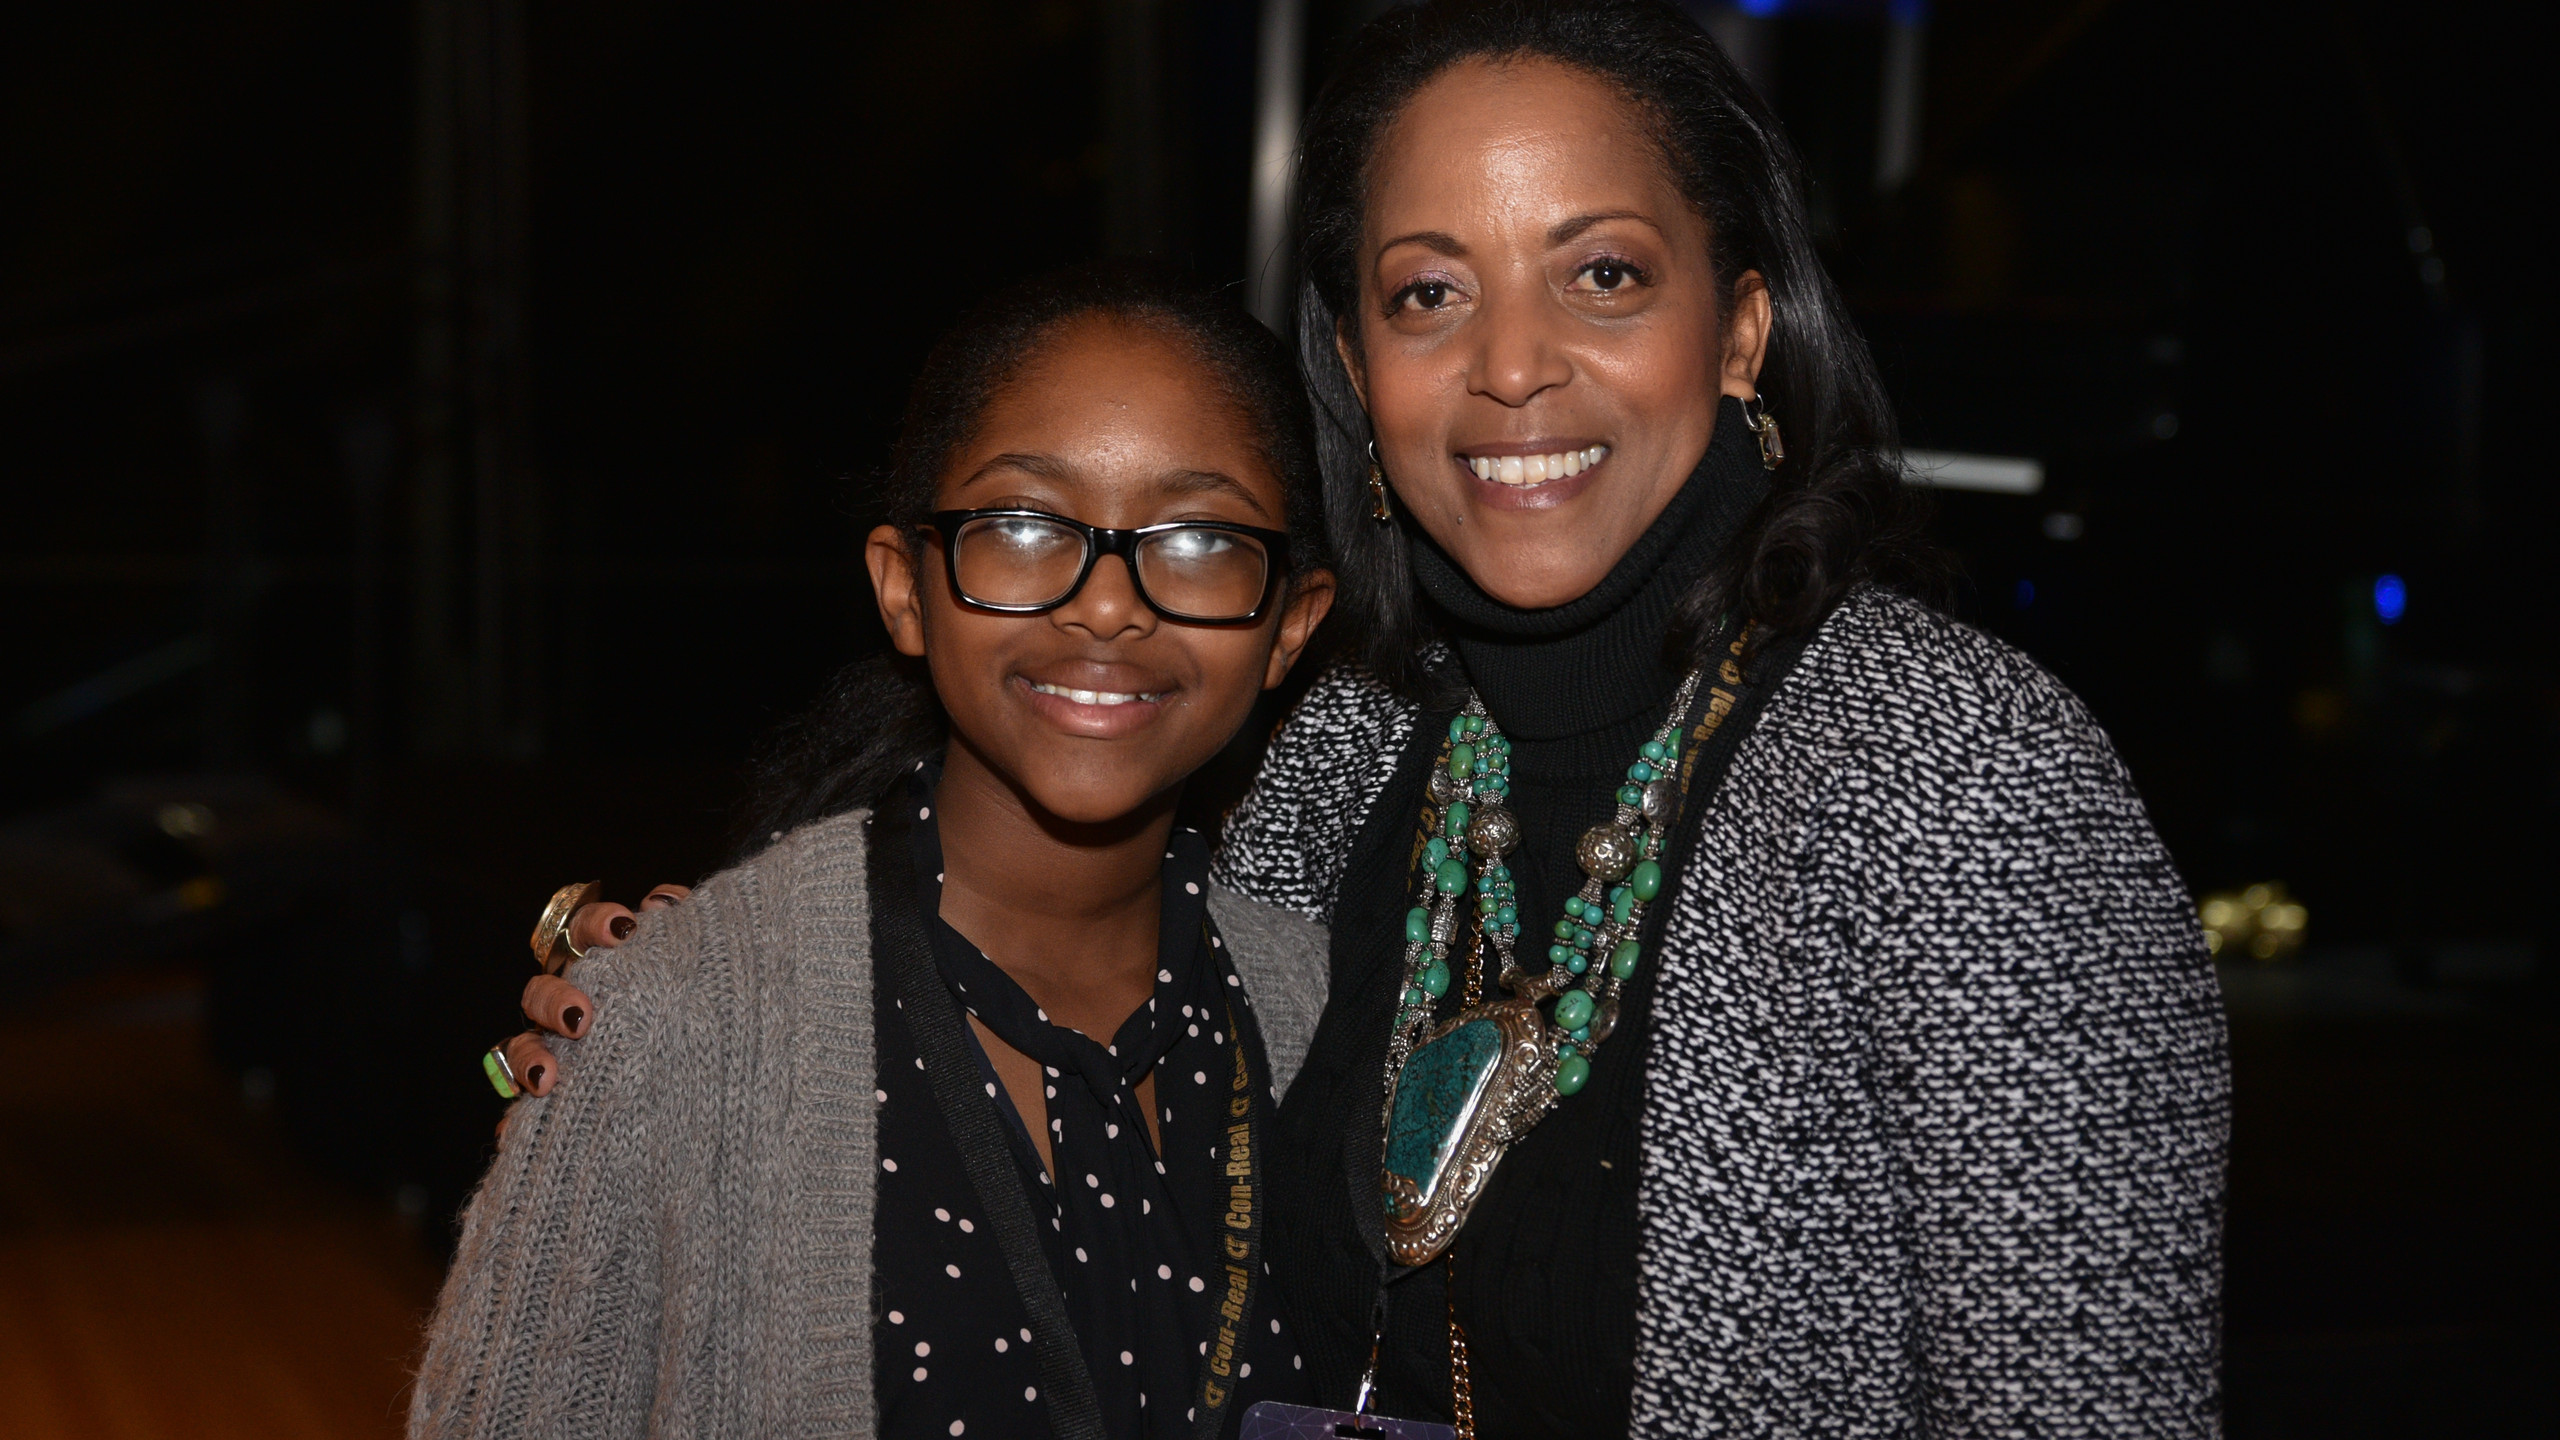 A black woman and young black girl at the event